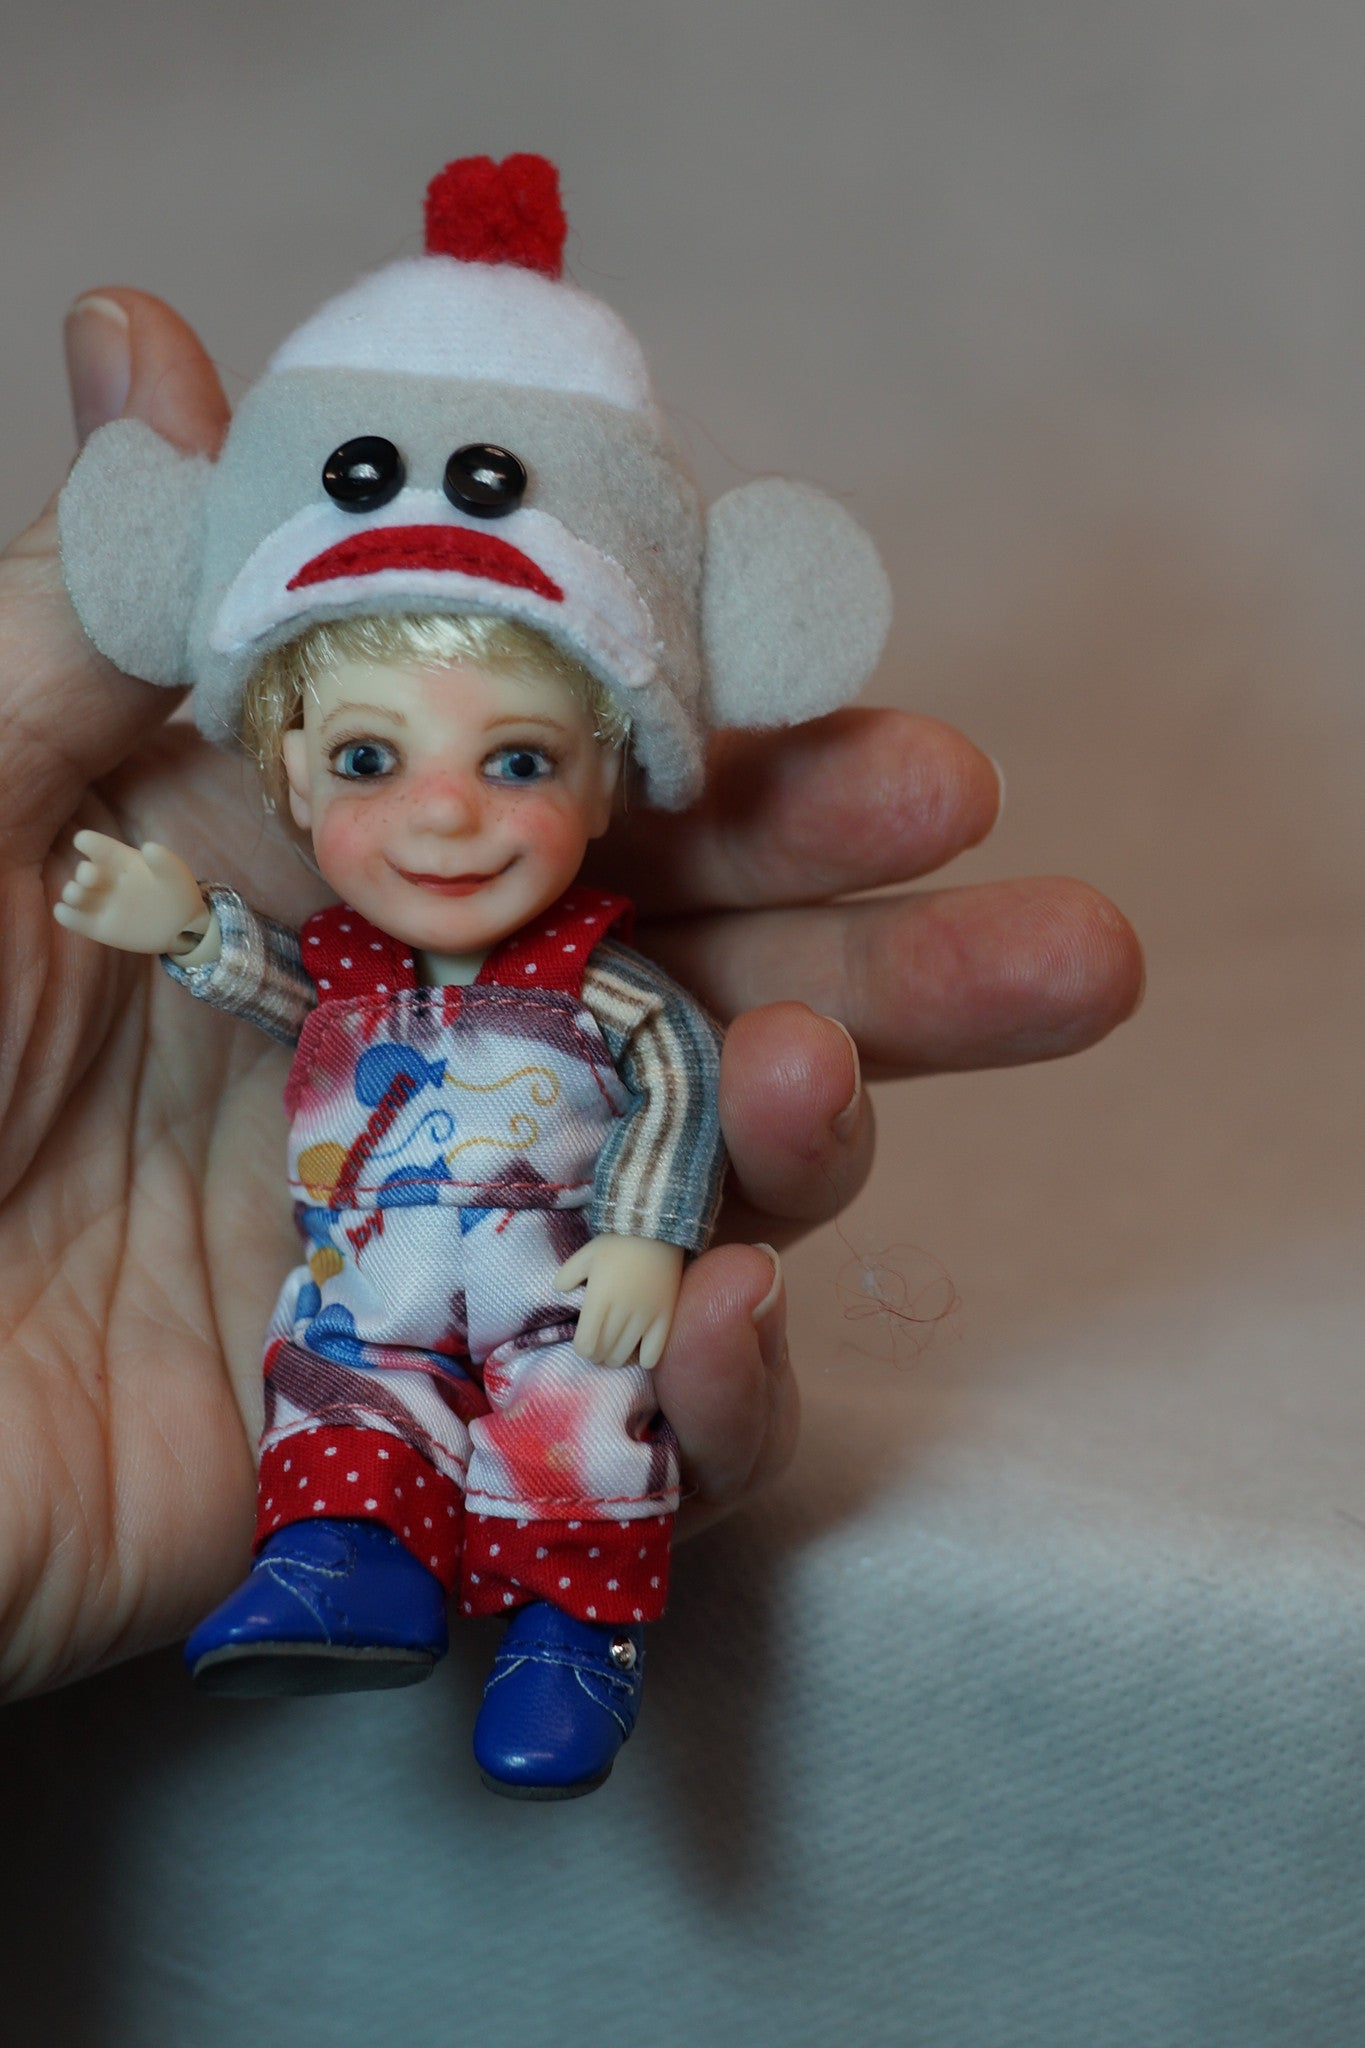 Giggle & Goofball's Surprise Collectible Micro BJD Set by Bo Bergemann